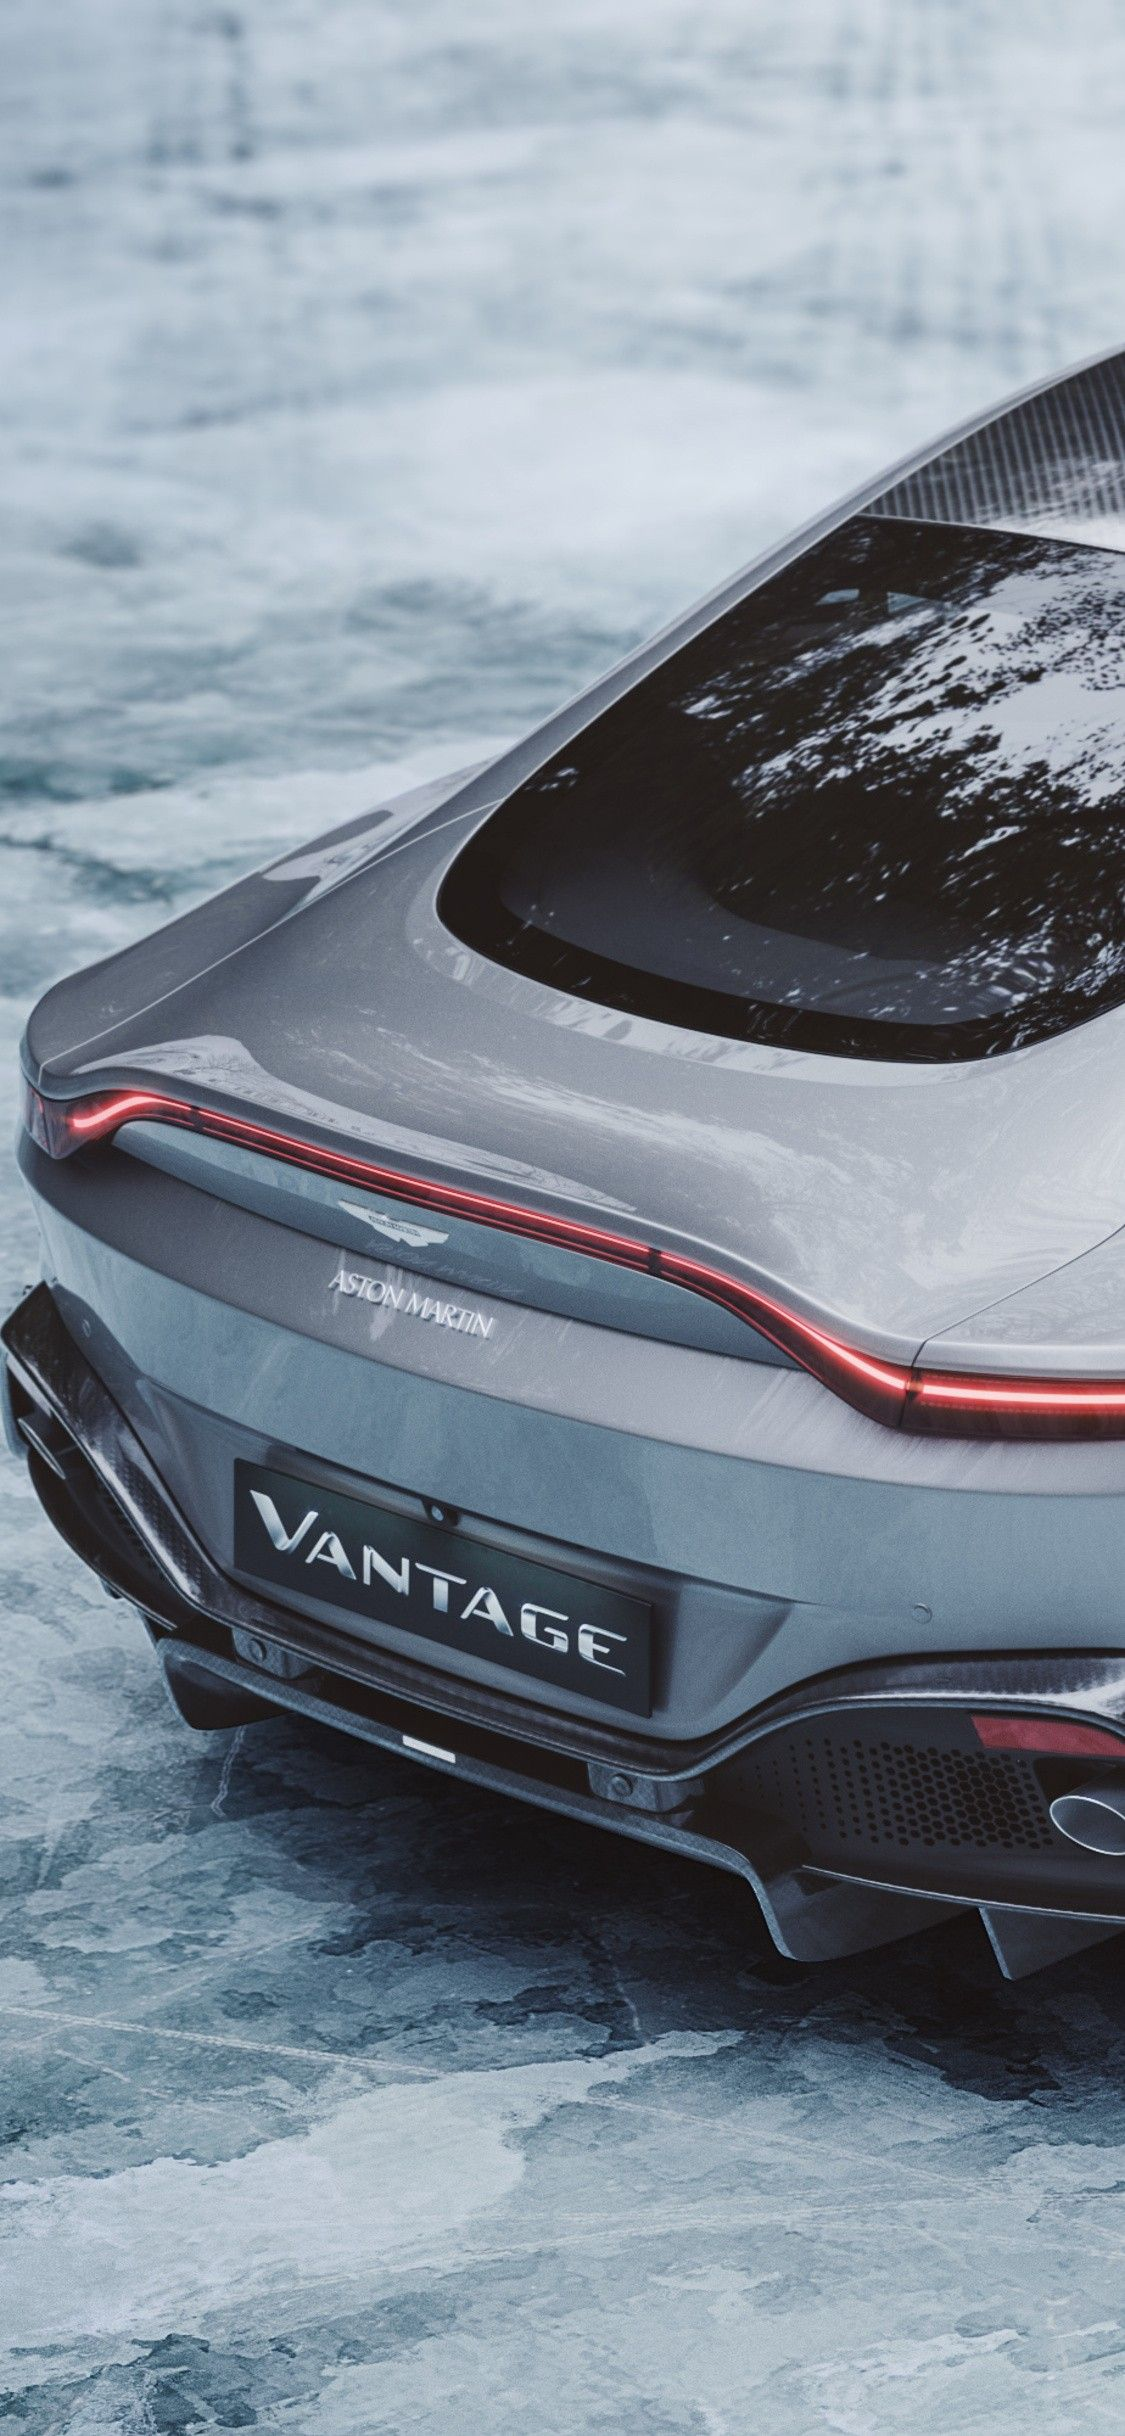 Pin By 21motoring On Wallpapers In 2021 Aston Martin Aston Martin Vantage Aston Martin Vantage Wallpapers